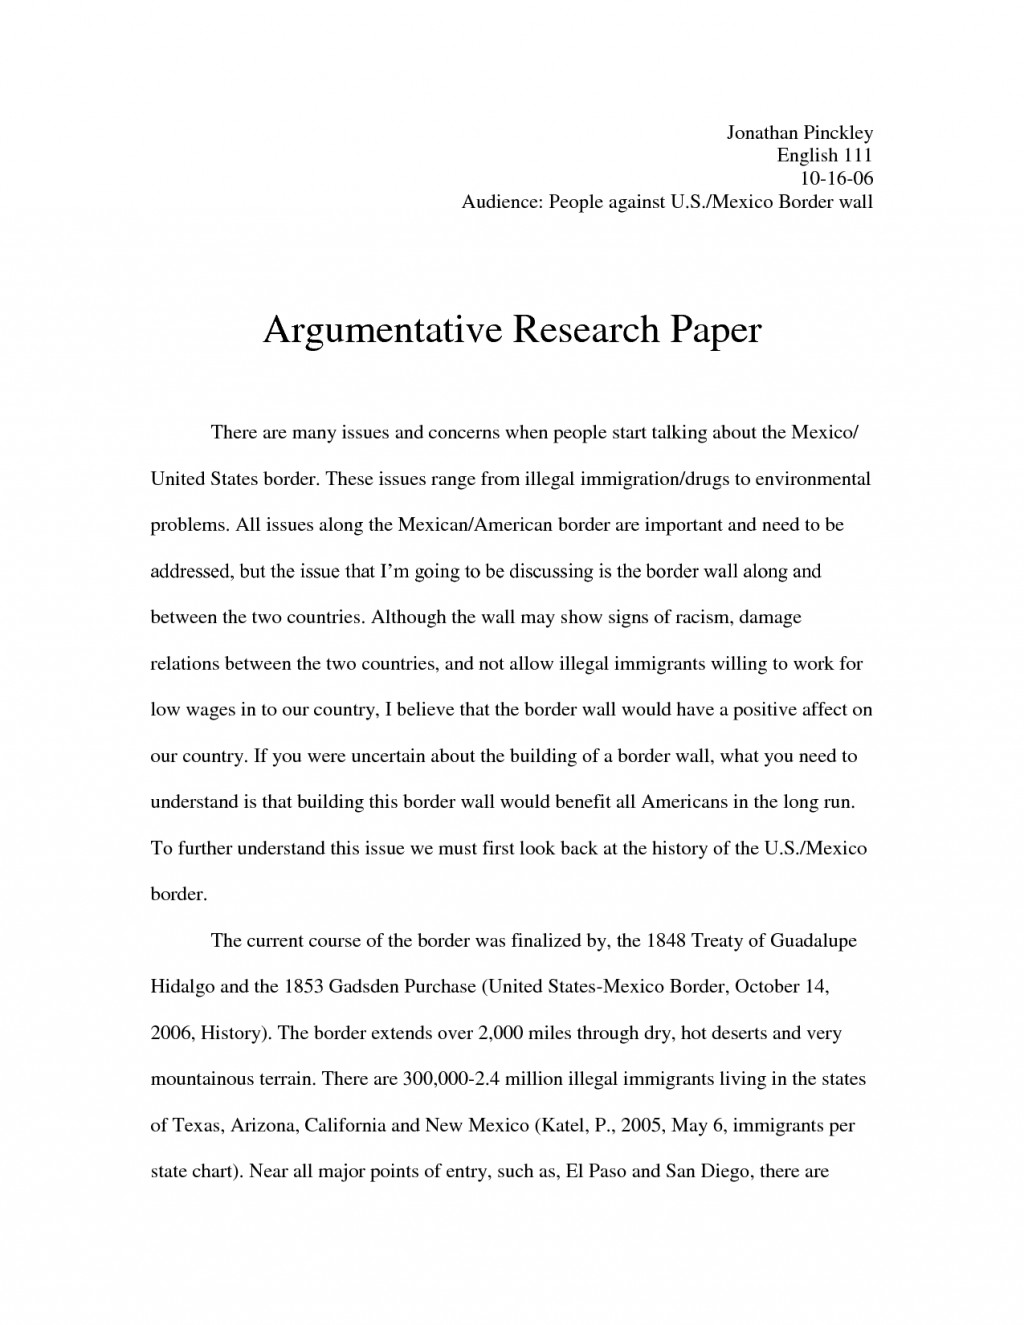 014 Uncategorized Debate20y Argumentative Thesis High School Topics Sentence Starters Outline Worksheet Structure20 For Research Rare A Paper Interesting Medical Large